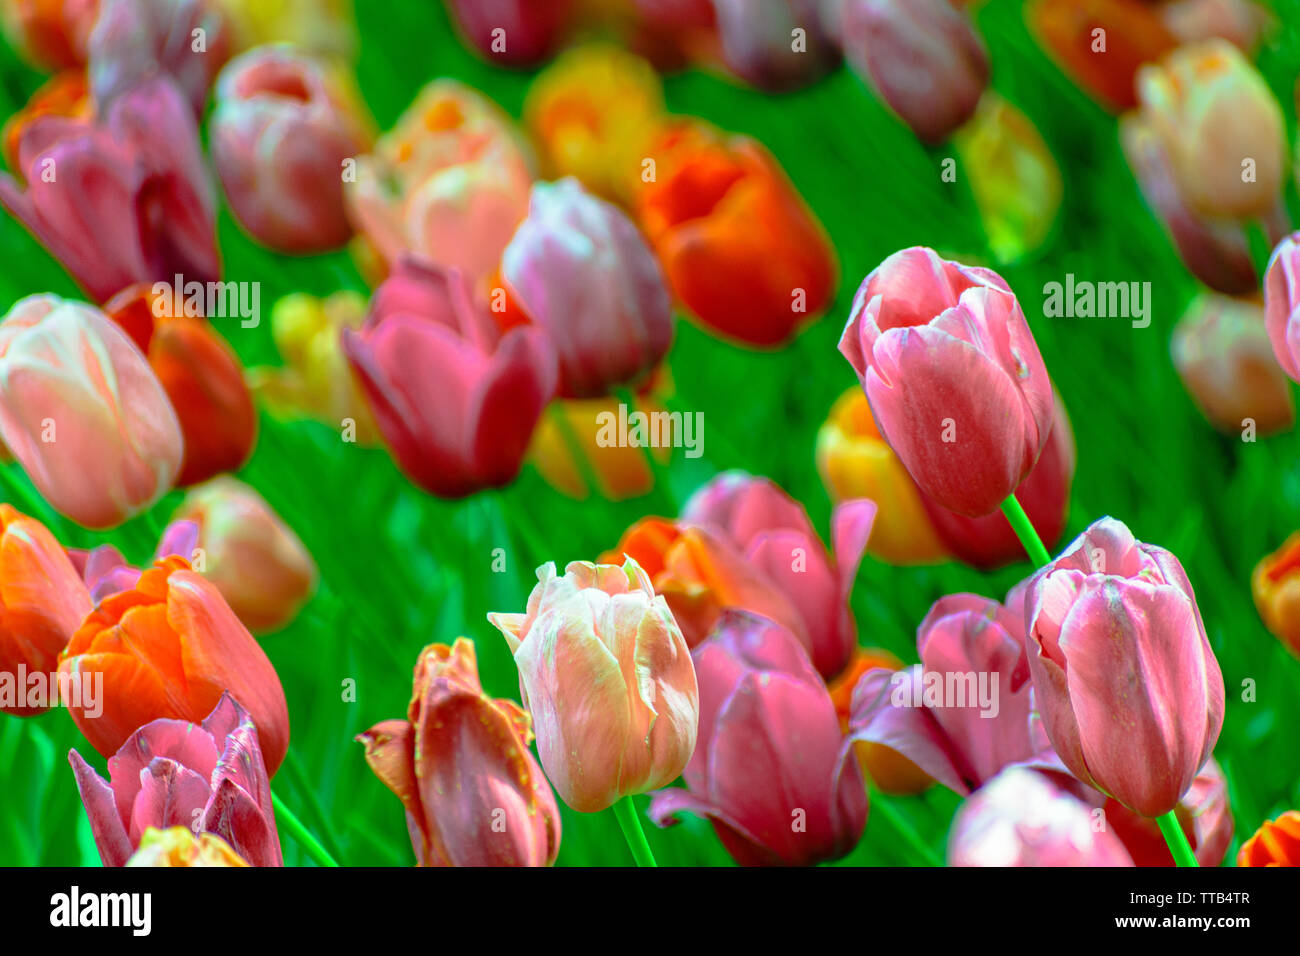 Multi-colored tulips leaning to the left, predominantly pink, red, and orange hues. - Stock Image